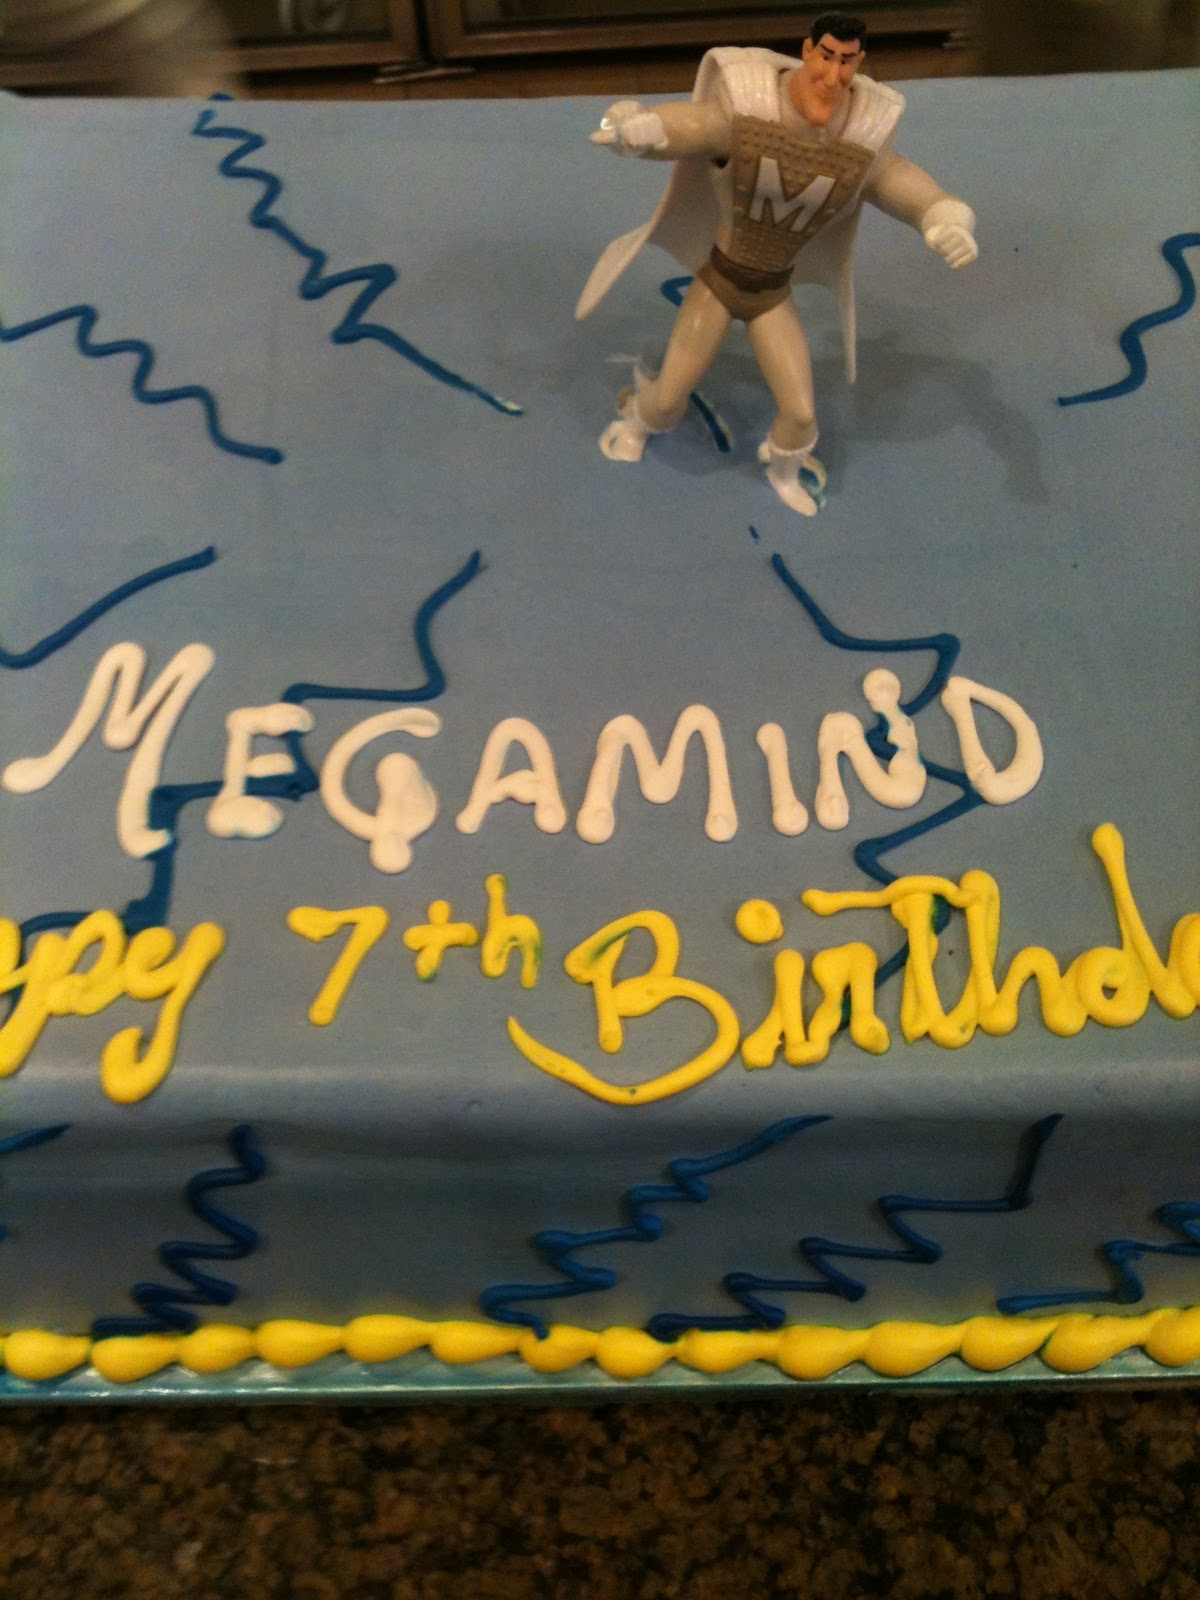 Megamind birthday, an extra hour, and new goals